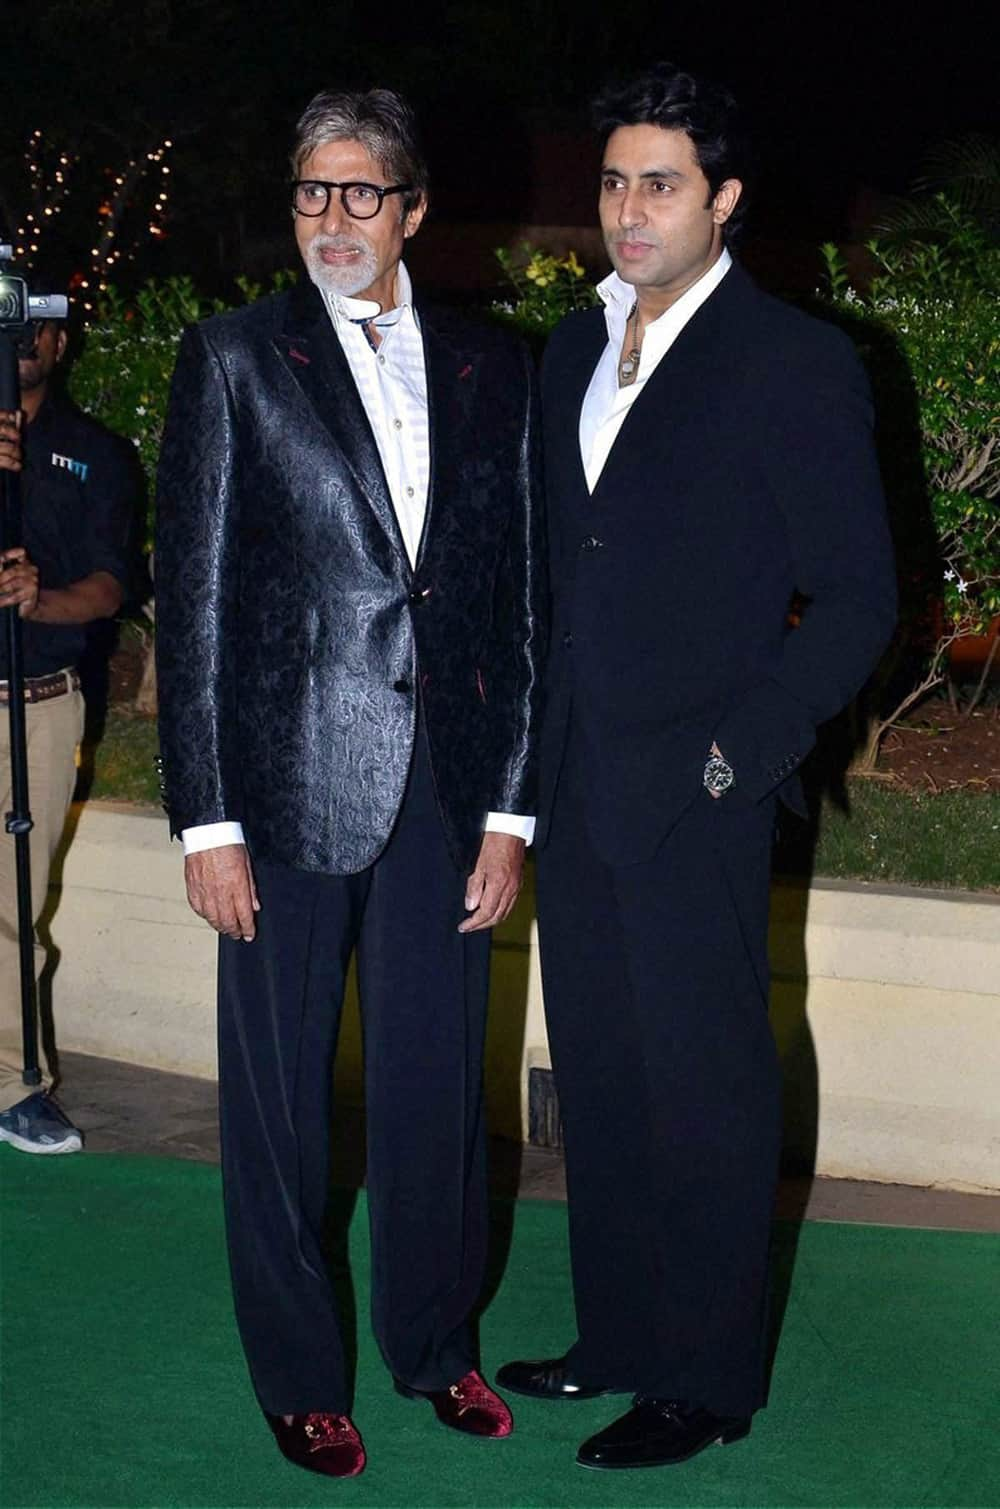 Amitabh Bachchan and Abhishek Bachchan at the wedding reception of Mahesh Bhatt's son Vishesh Bhatt in Mumbai.